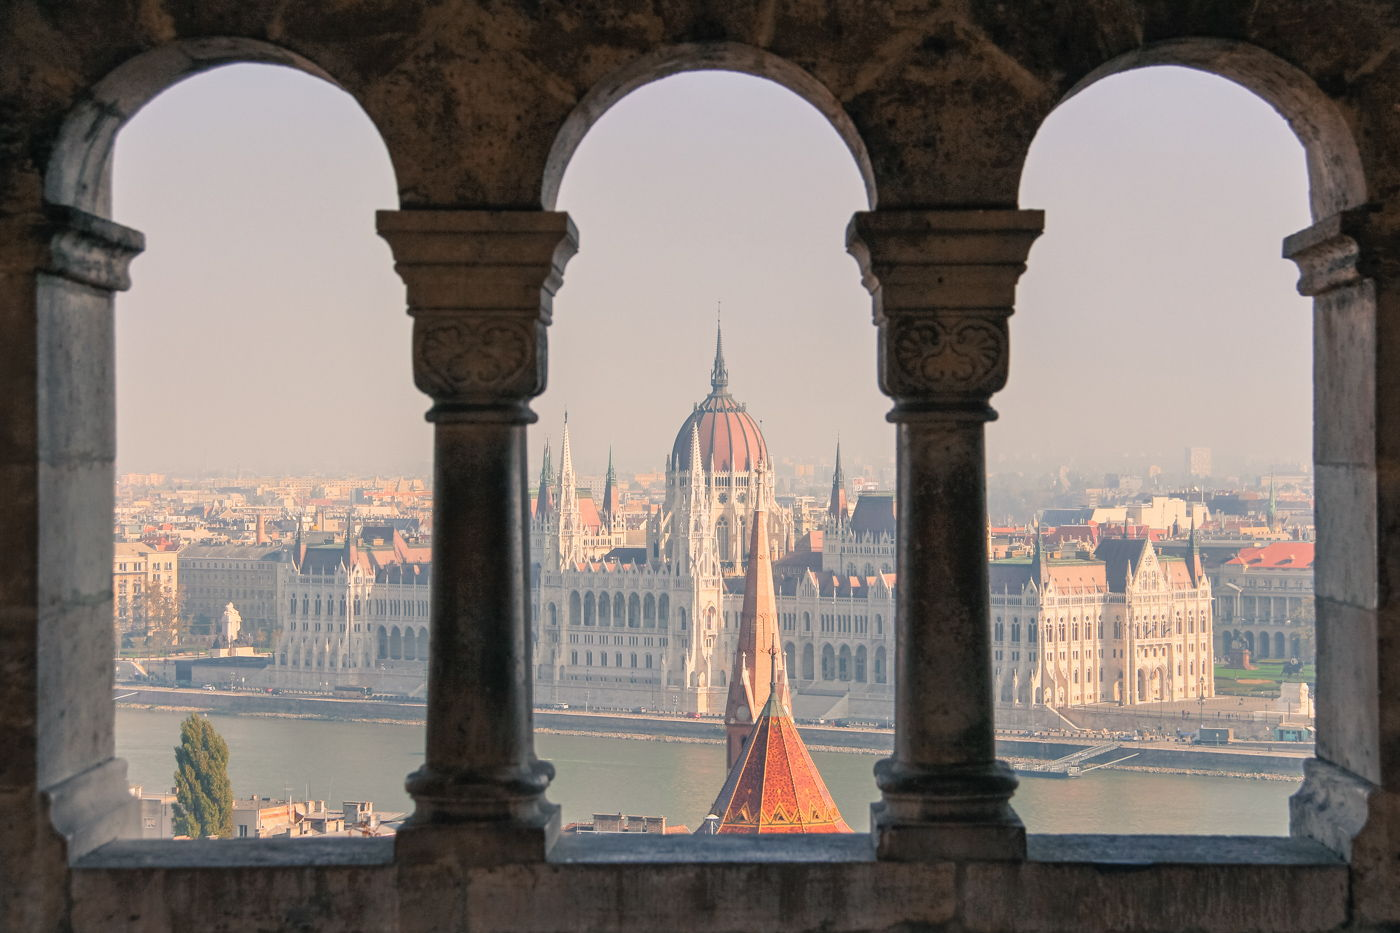 Treats, Sweats and Eats in Budapest